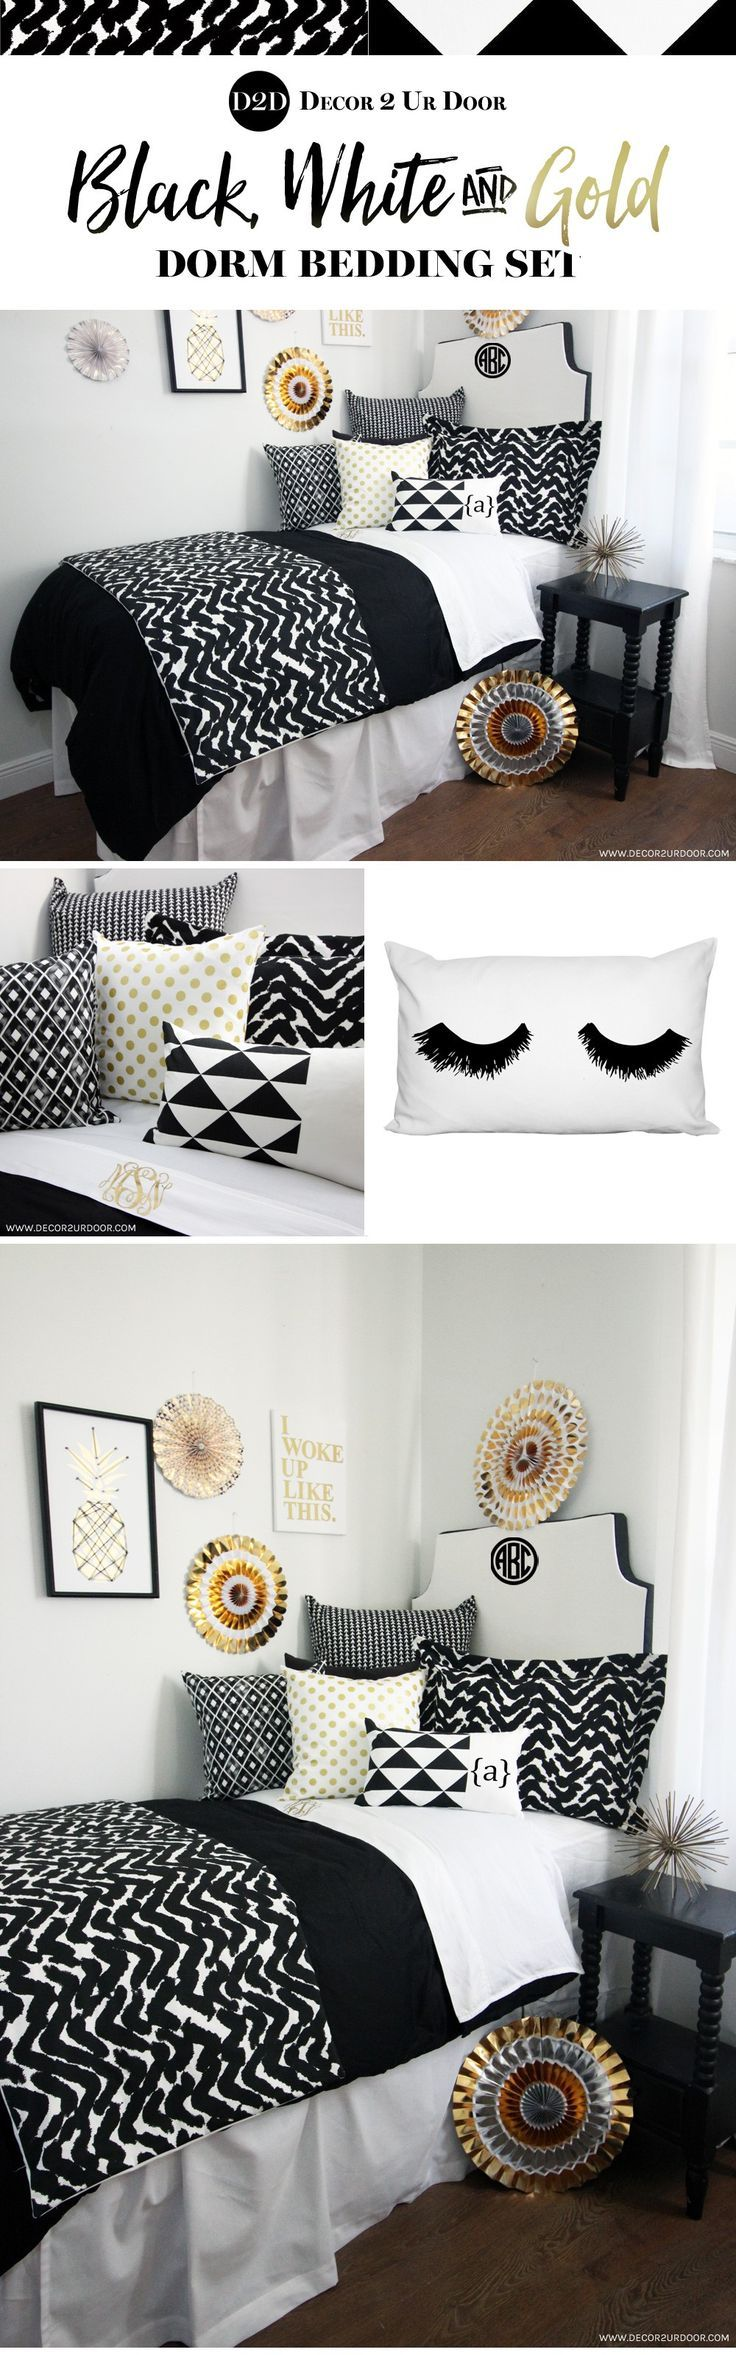 Black White And Gold Dorm Black White And Gold Bedroom Gold